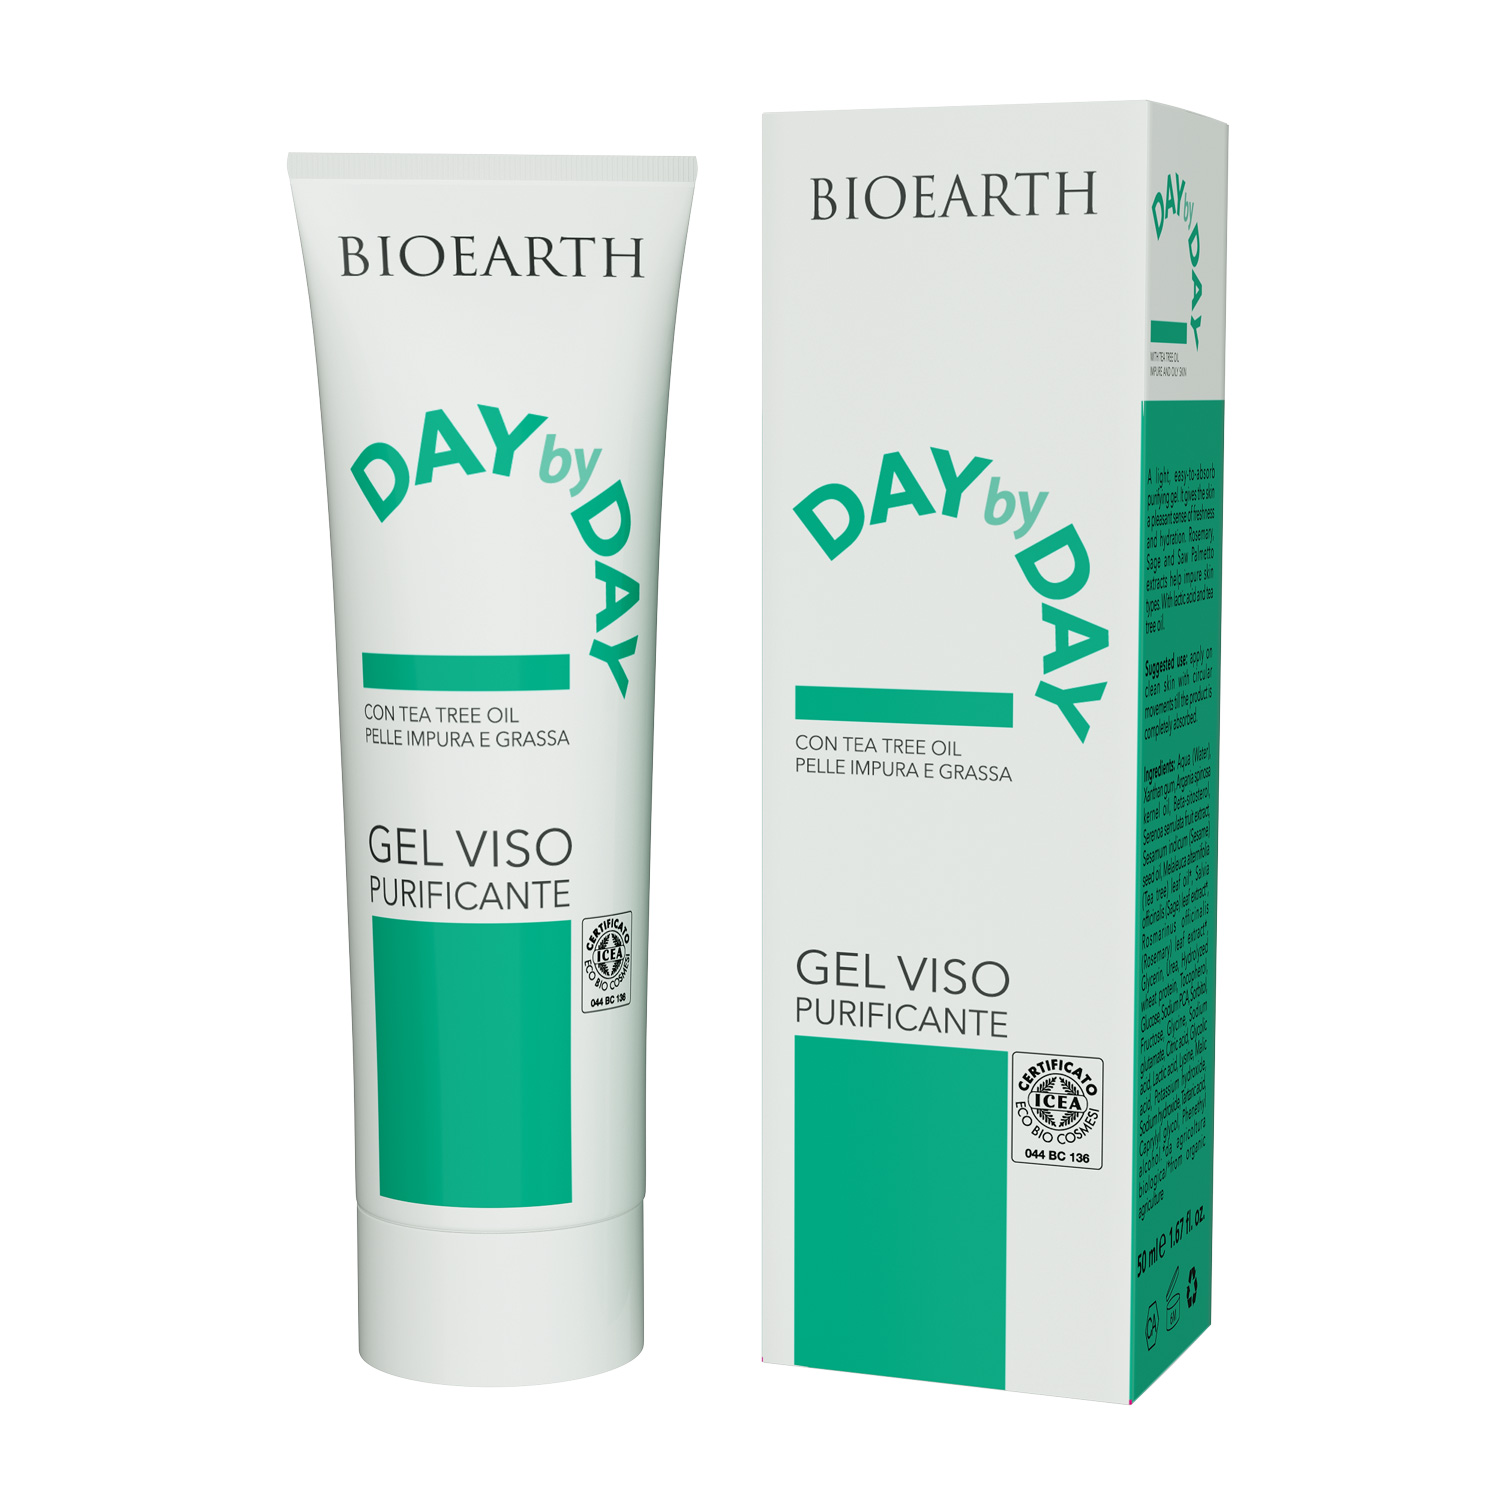 Gel Viso Purificante Day by Day Bioearth 50ml